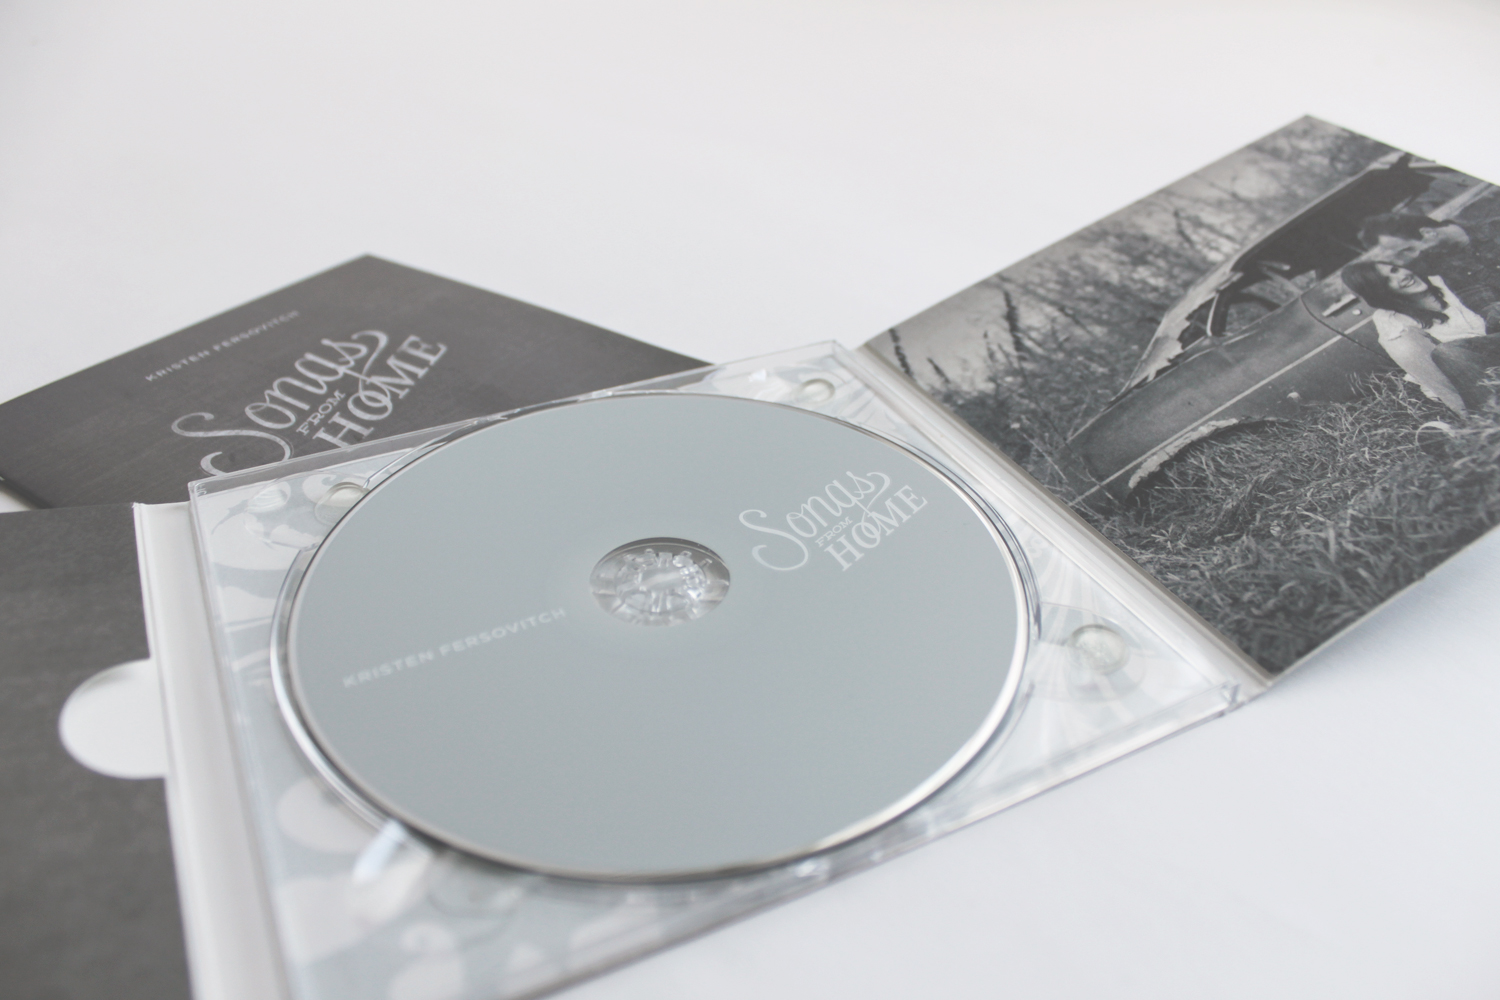 kristen fersovitch songs from home album layout, closeup of disc and booklet, hand lettered logo, blue and grey, soft, album design, digipack, cd packaging, print design, uncoated paper